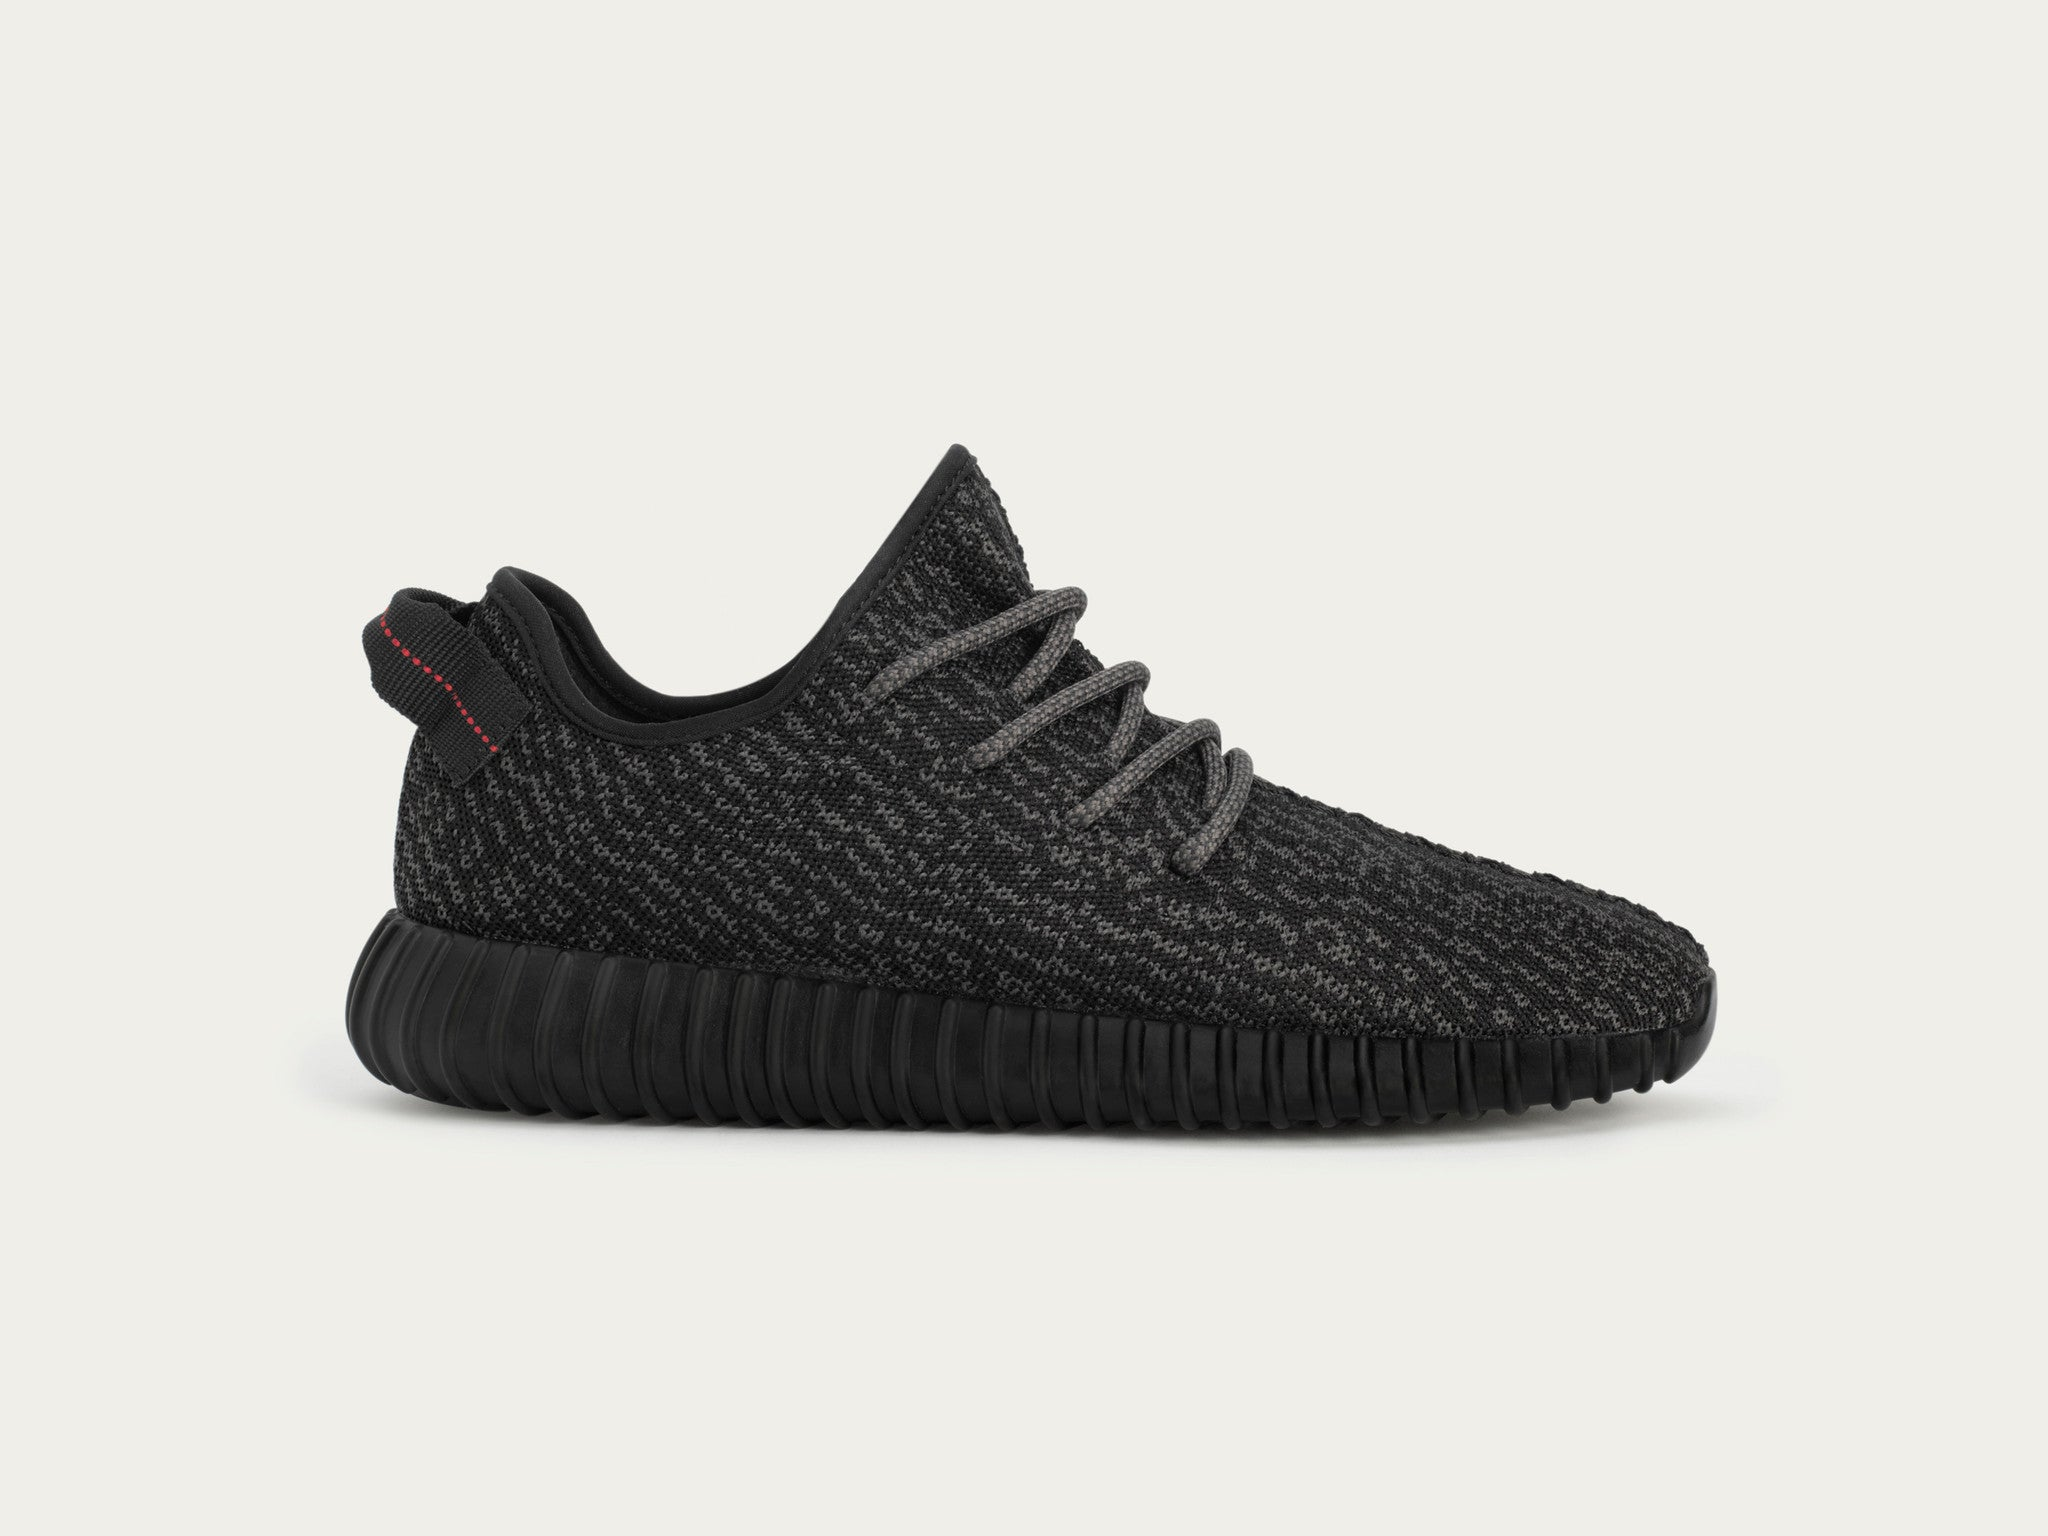 brand new bb64d ba117 Adidas Yeezy Boost 350 Womens